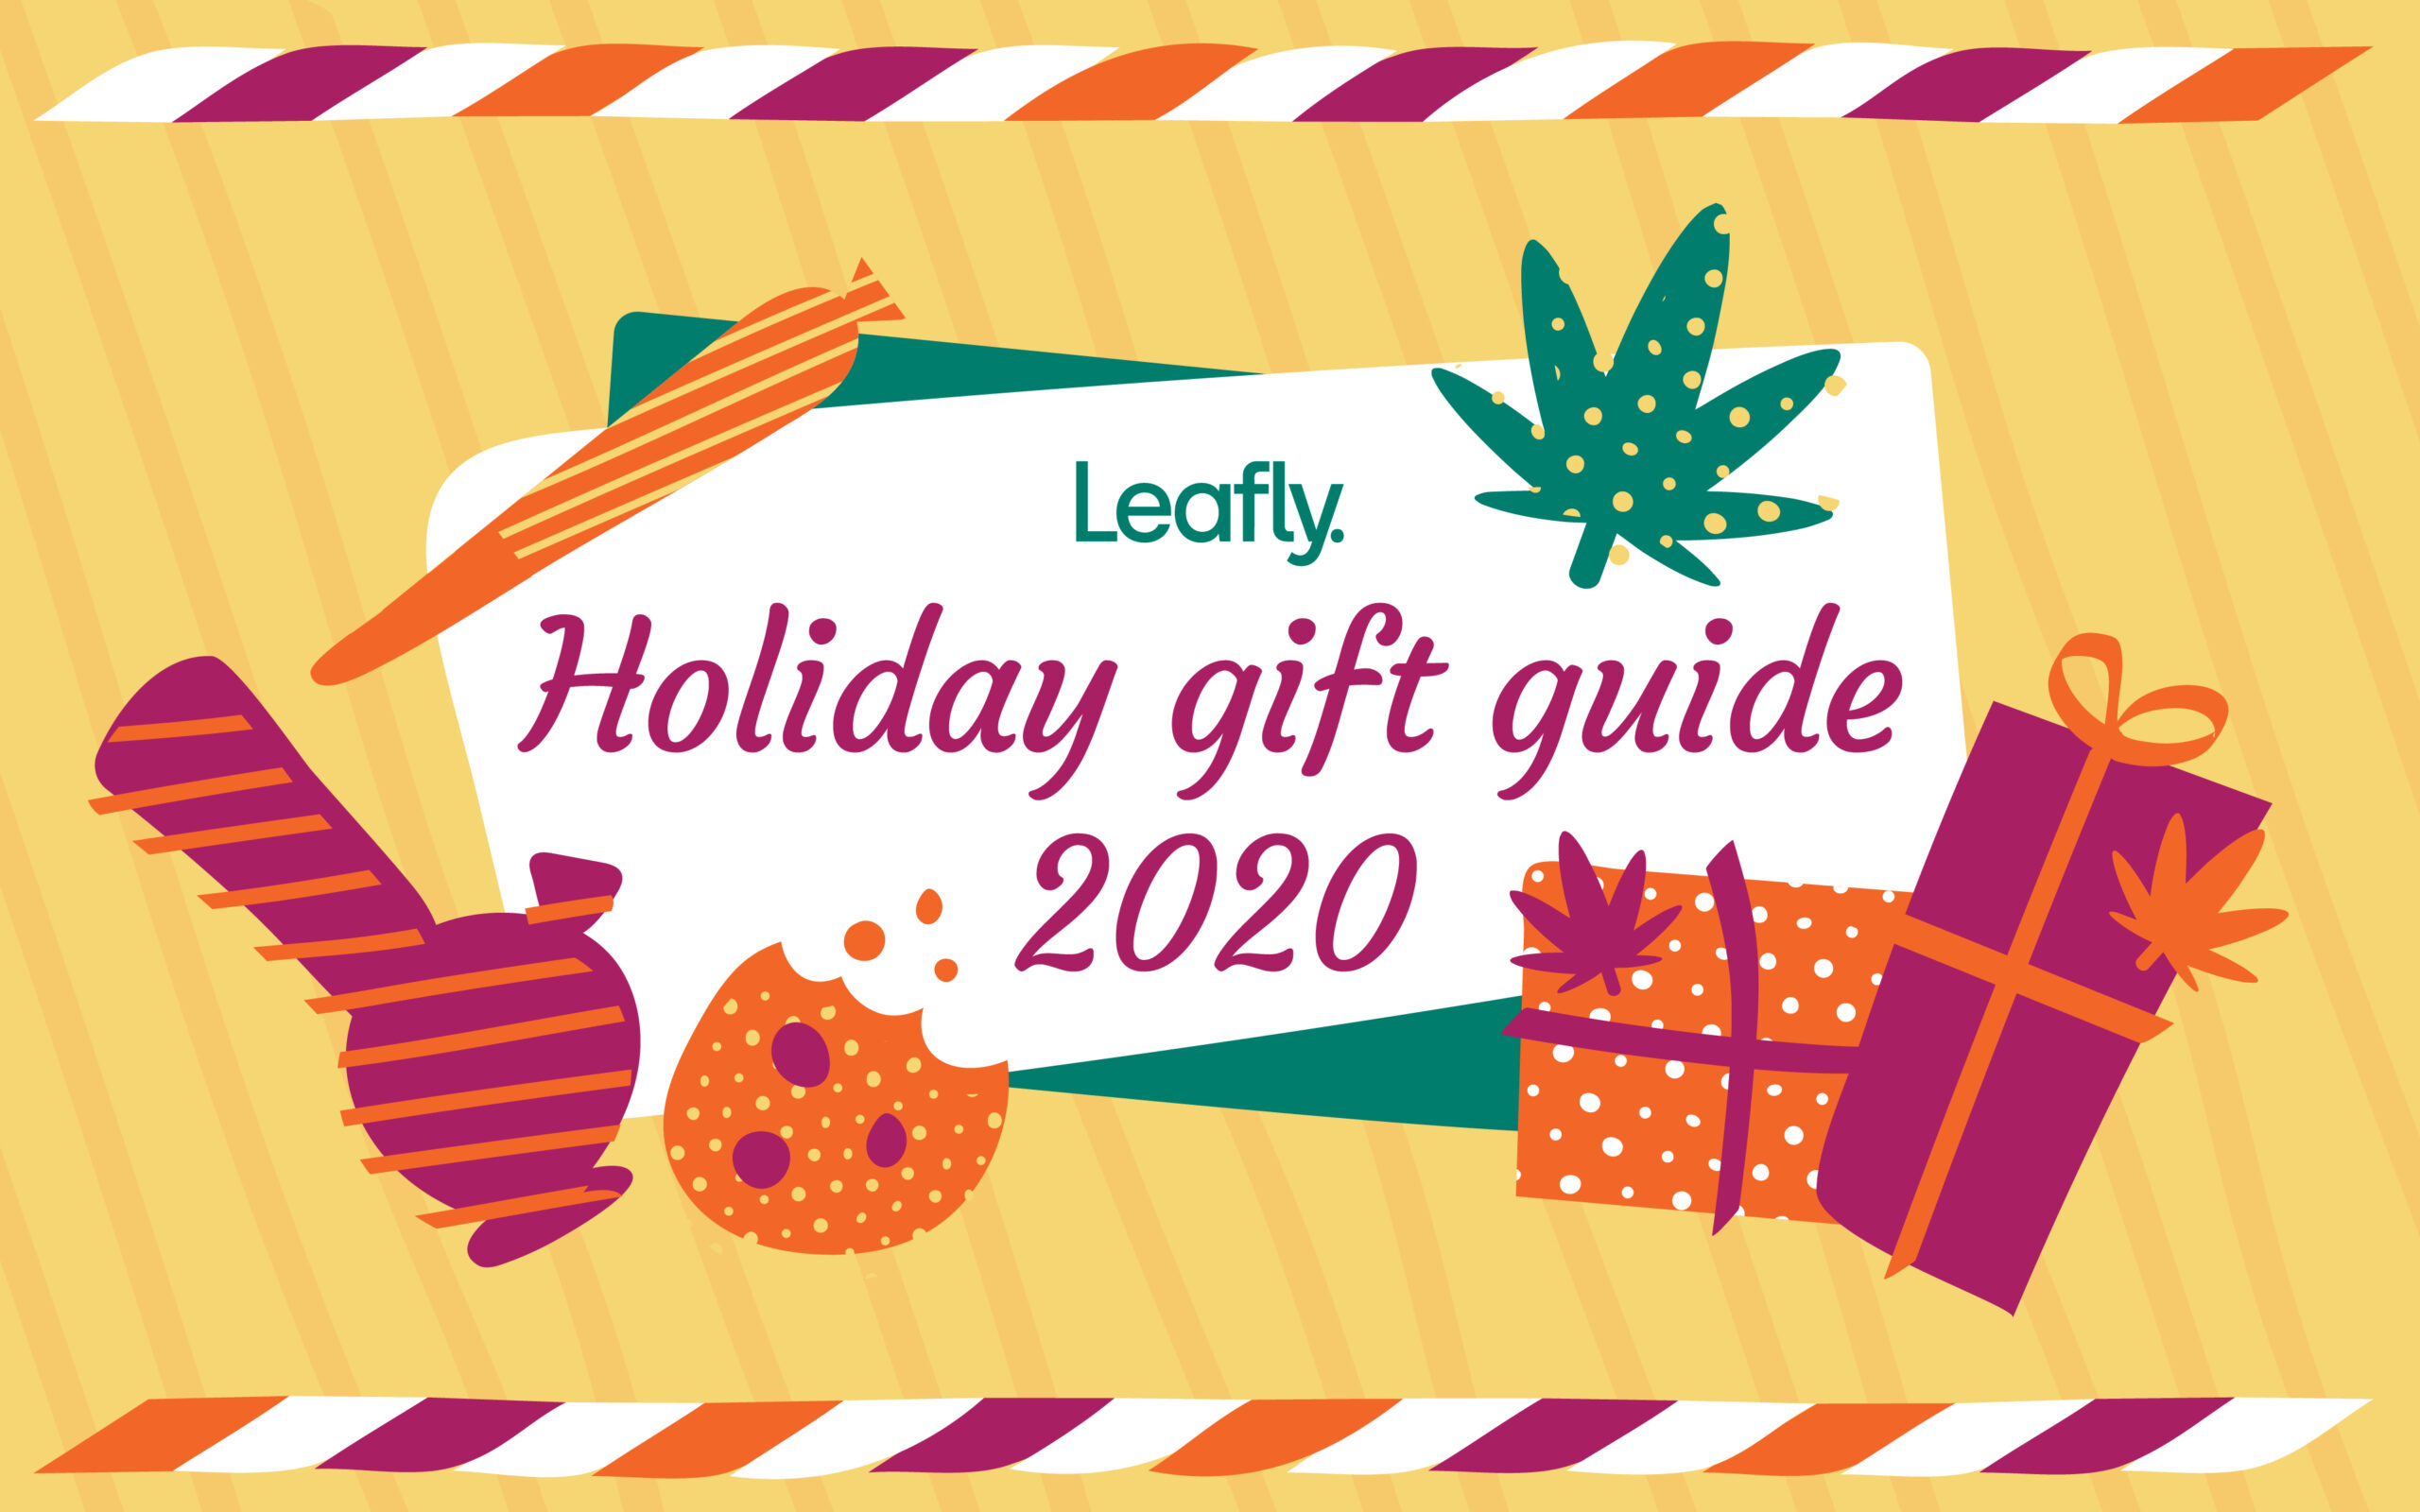 photo of The Leafly 2020 Holiday Gift Guide image